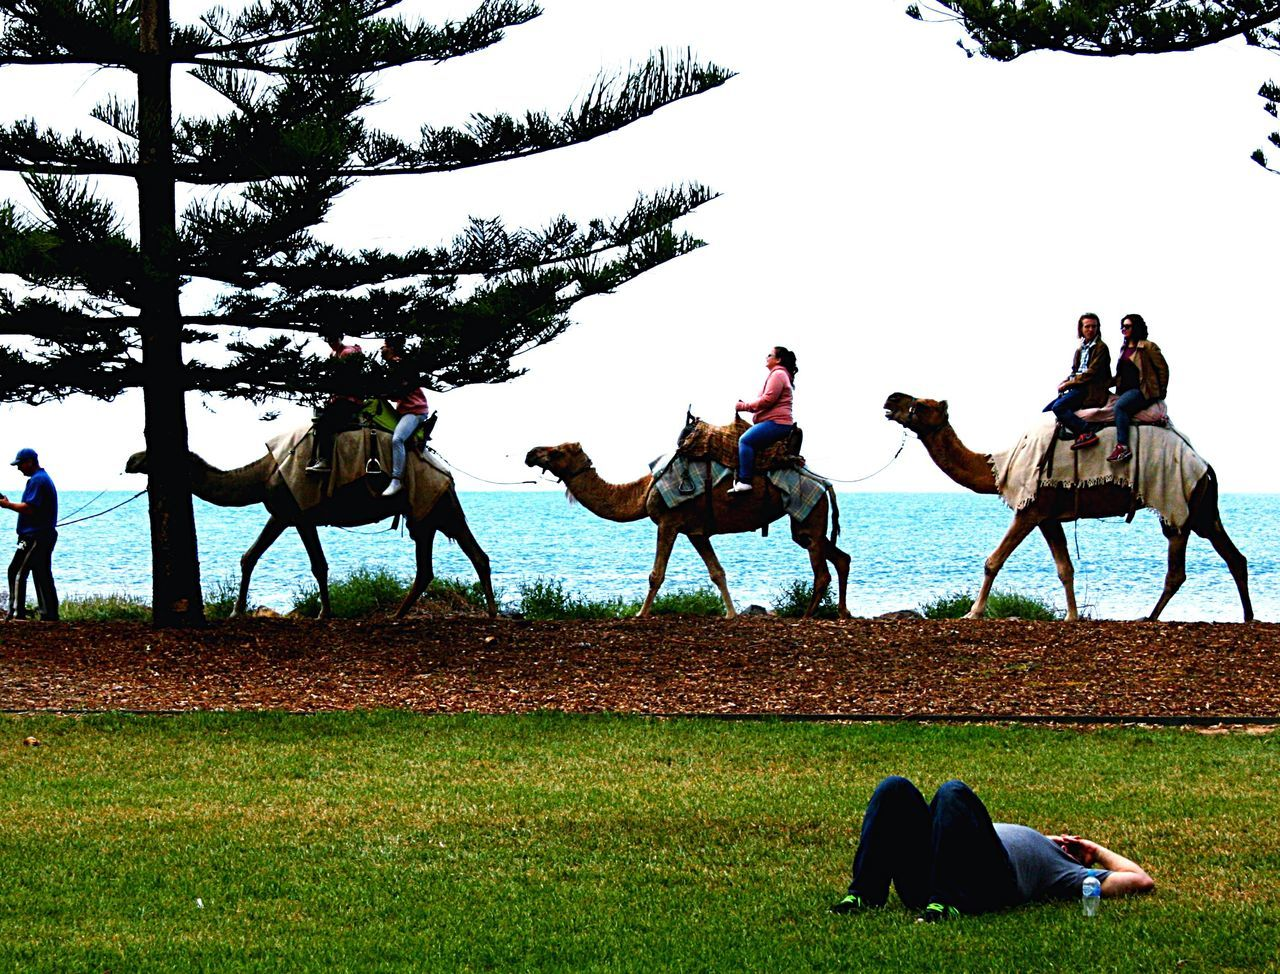 Camel rides and sleeping Camel Riding Man Alone Man Resting Beach Pine Trees Against The Sky